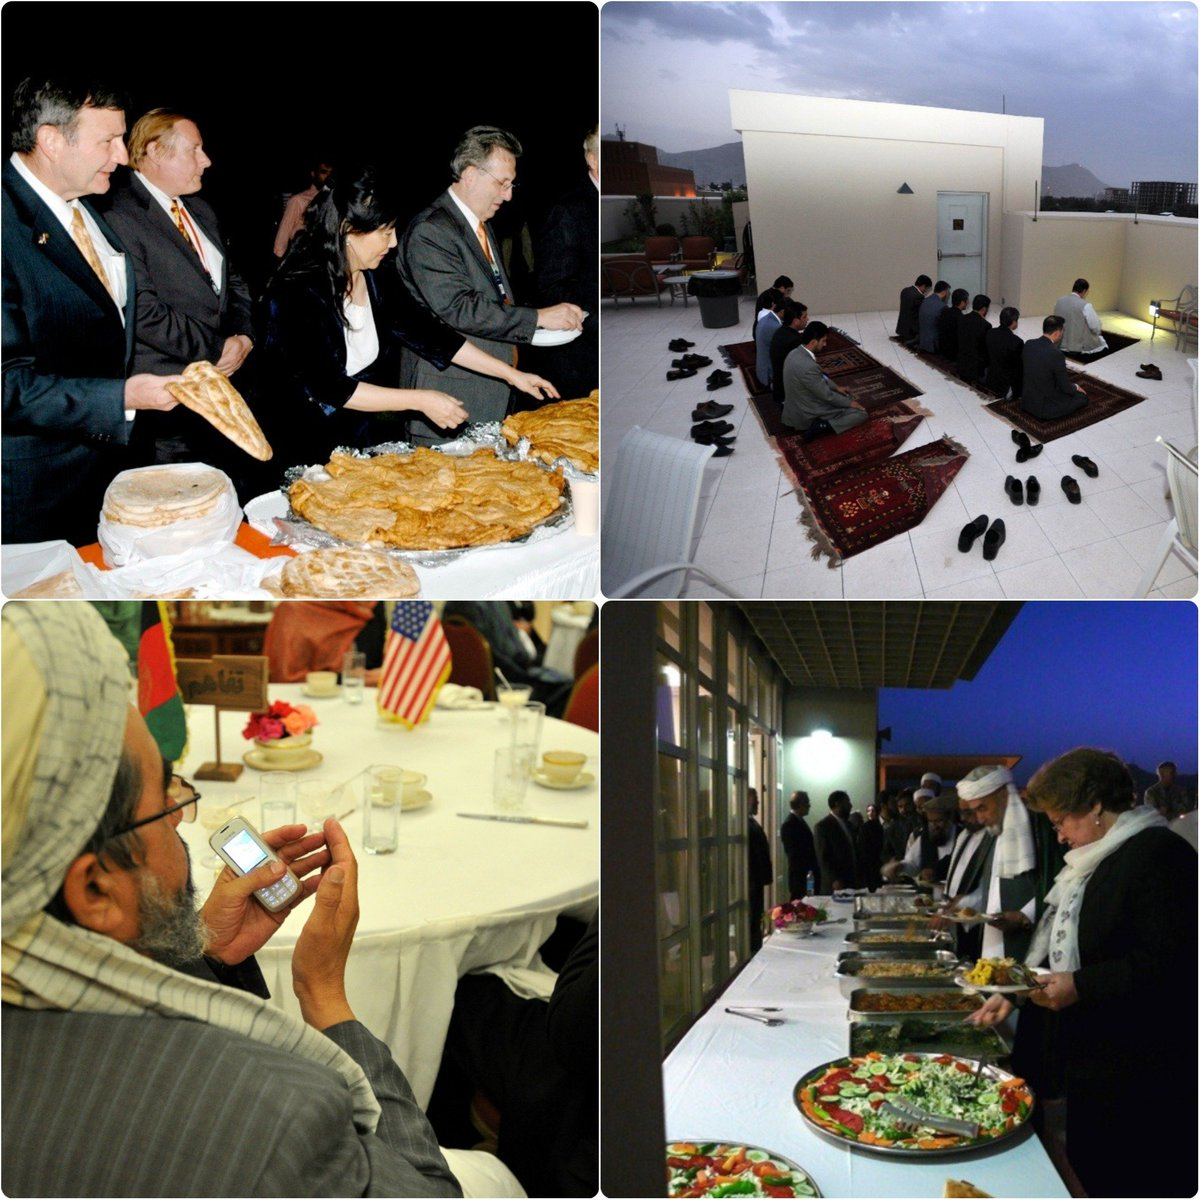 As we start the celebration of Ramadan on this #ThrowbackThursday, here's a photo from one of the early Iftars hosted by the U.S. Embassy after it re-opened.